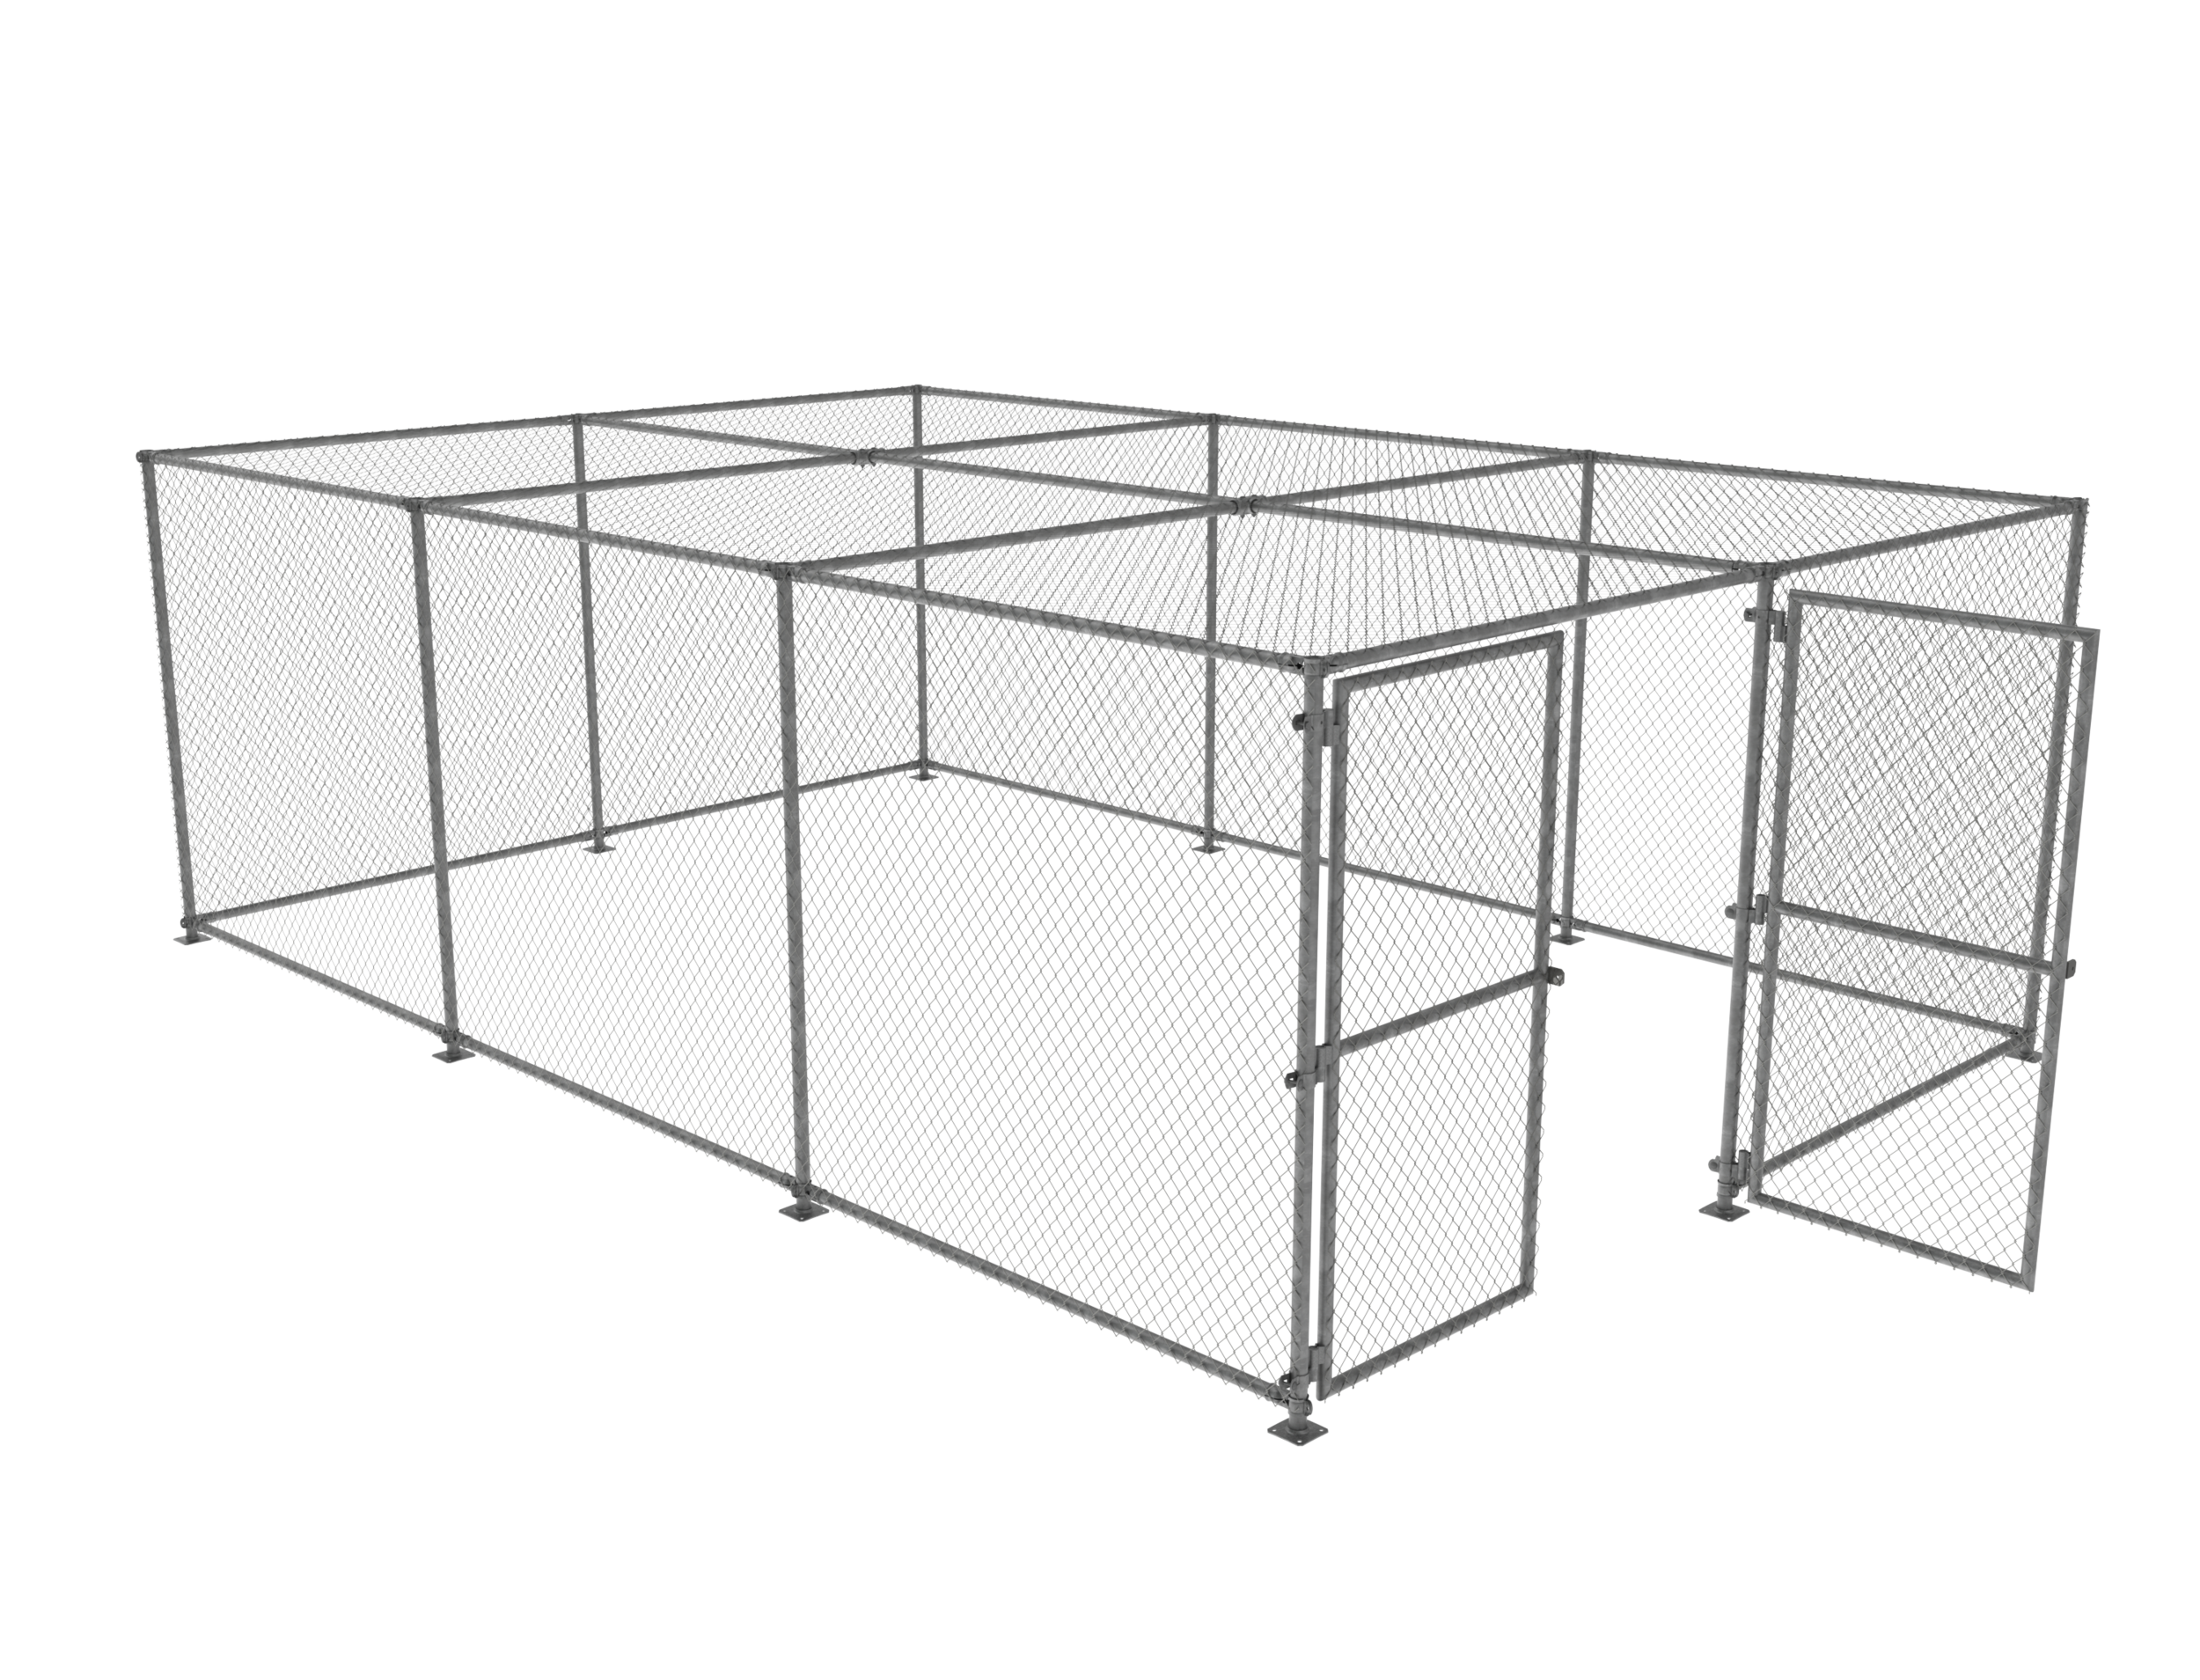 Chainlink Storage Cage Render 1.png